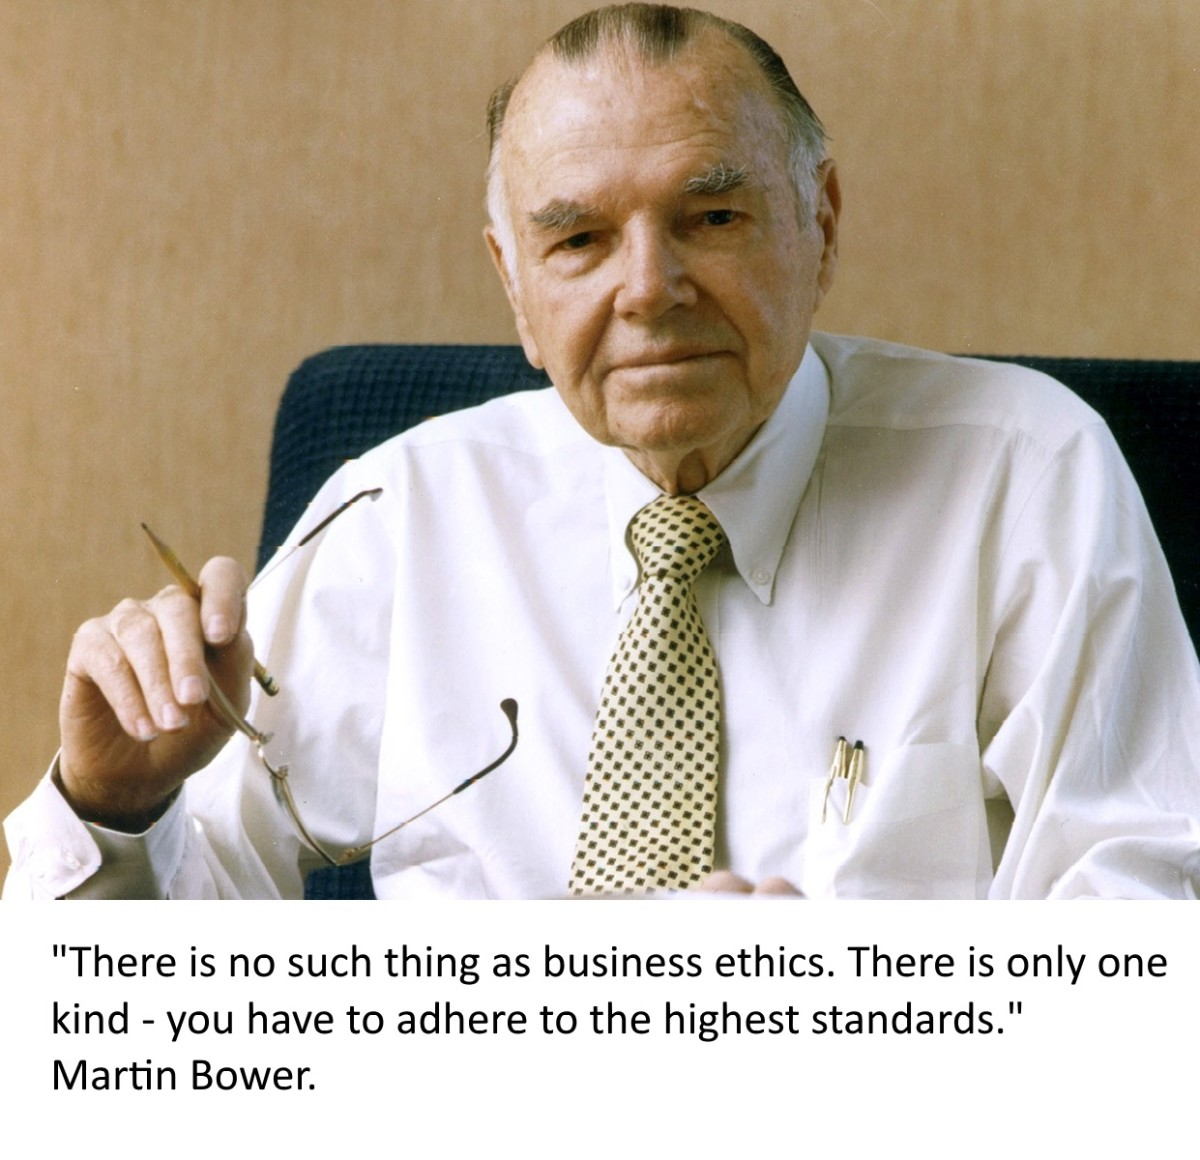 There is no such thing as business ethics. Ethics are universal. Something is either for the common good or it is not.